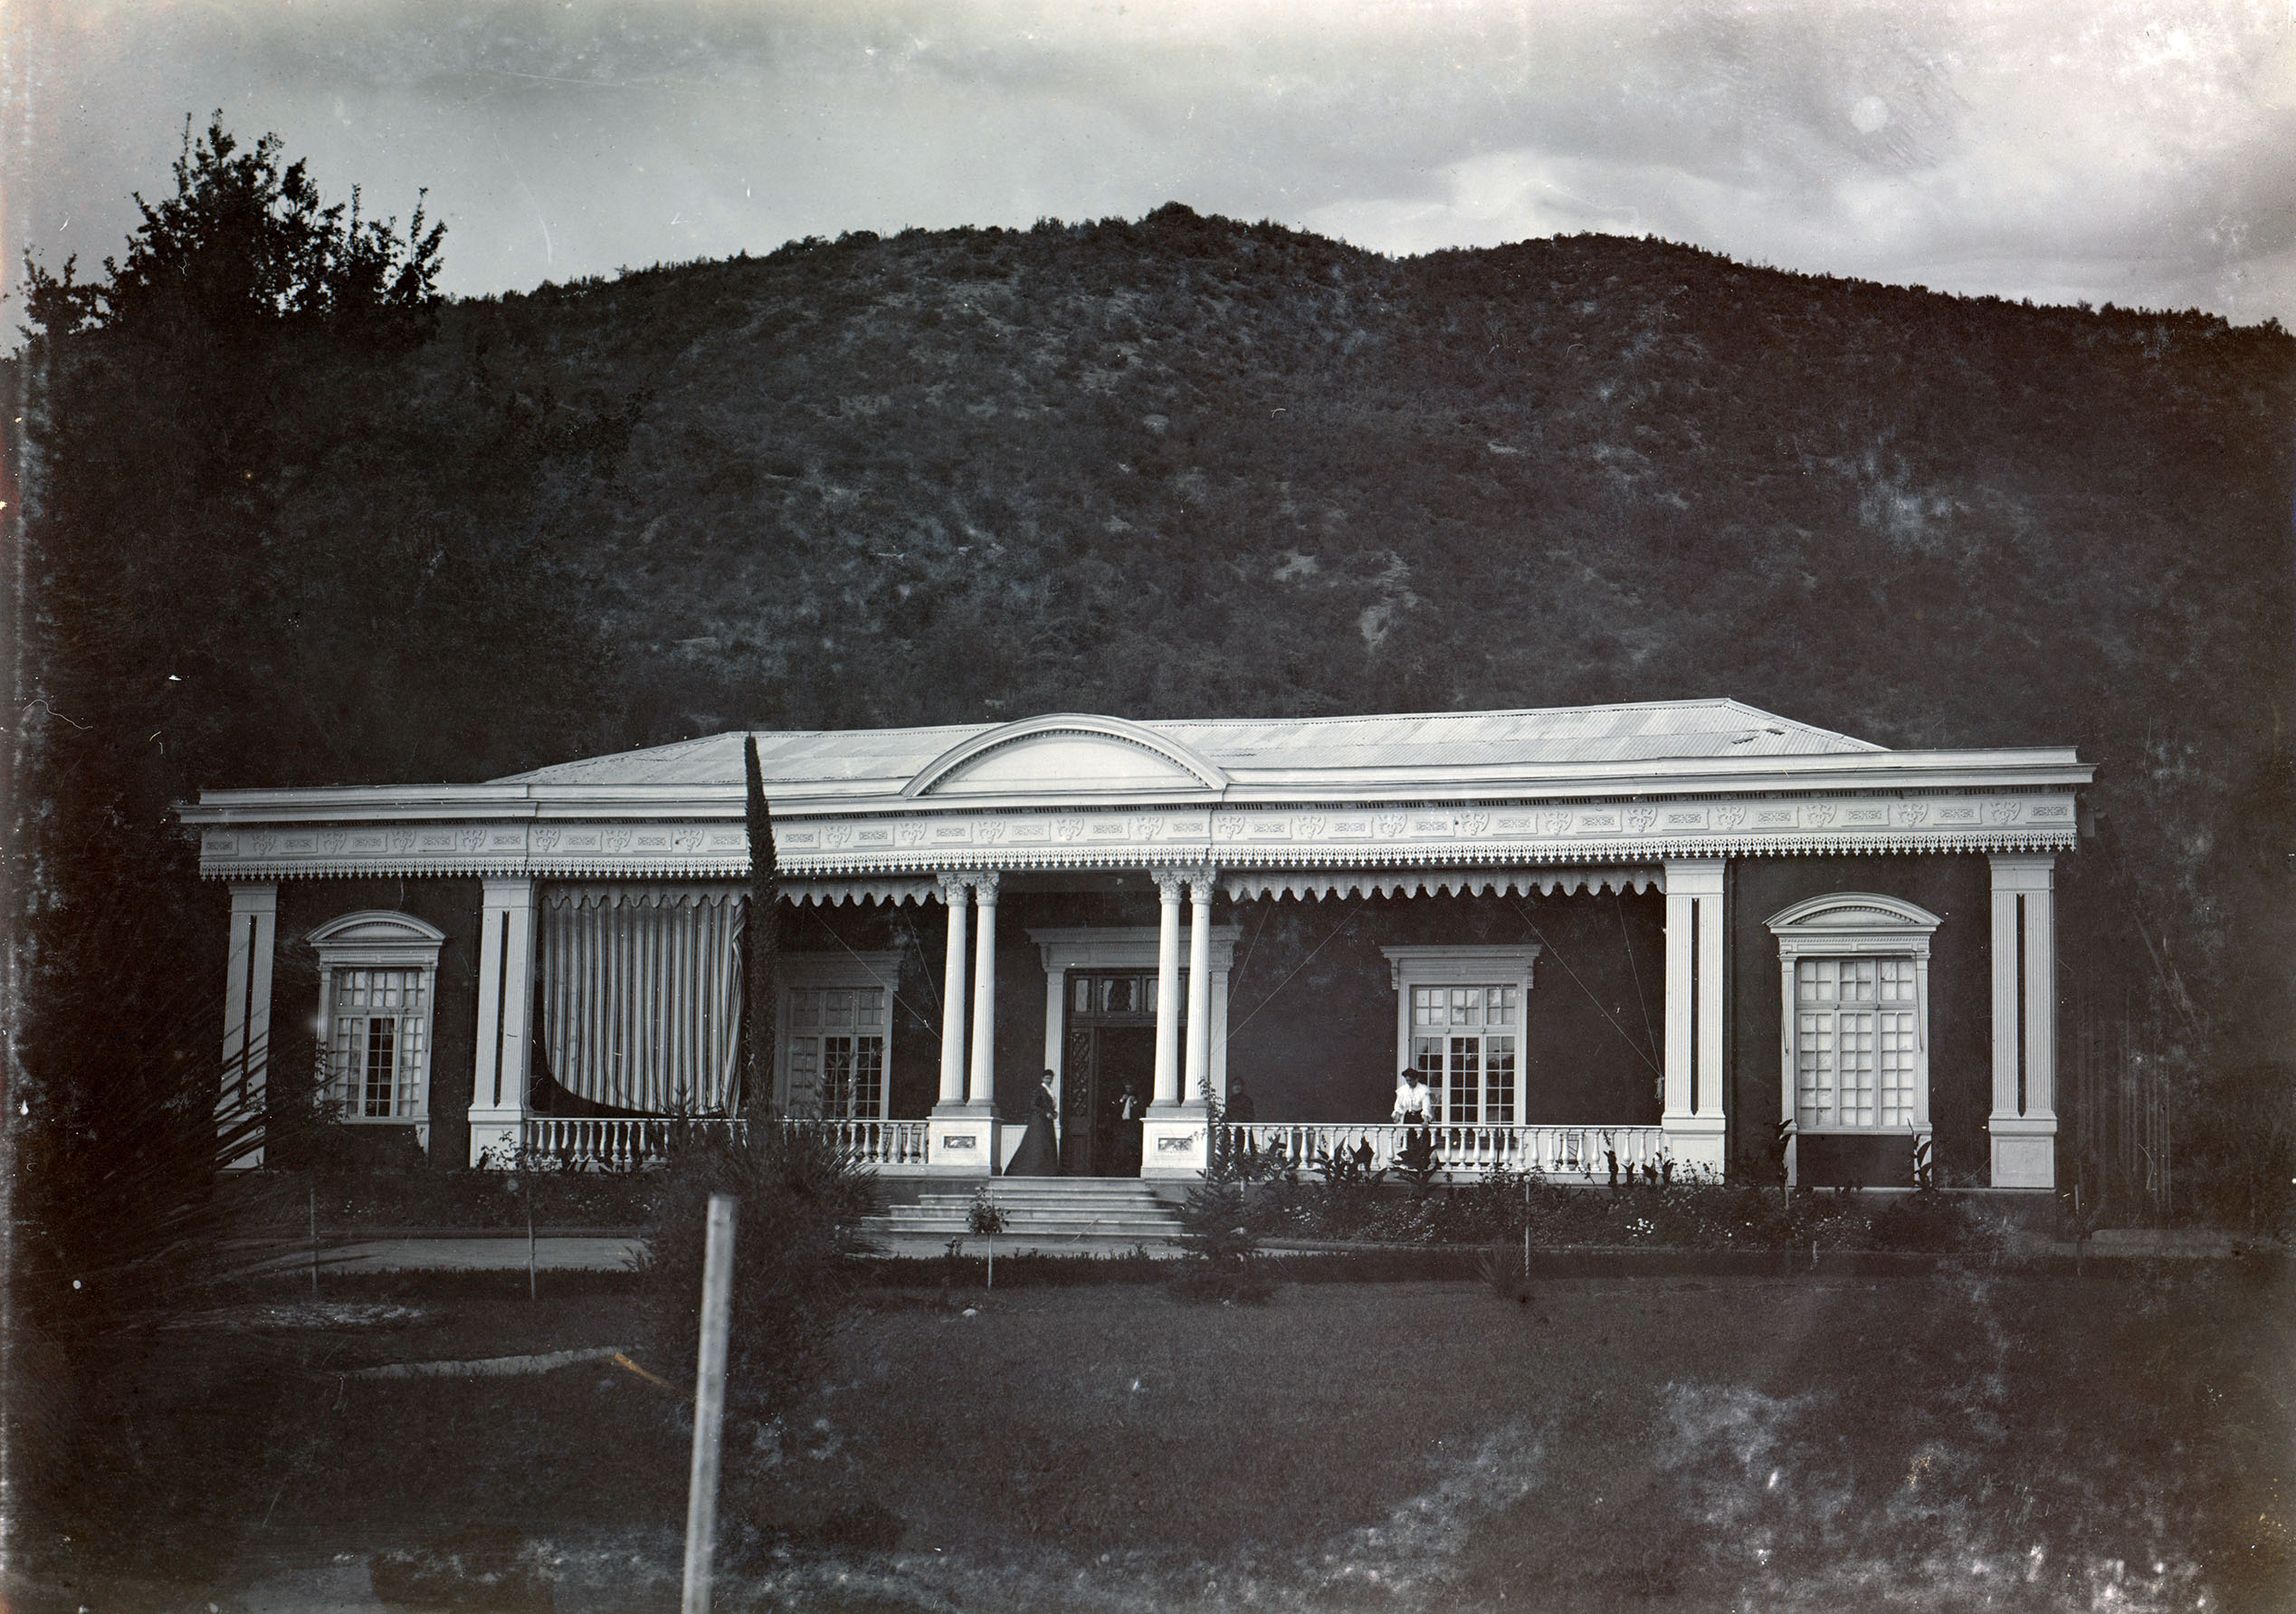 Enterreno - Fotos históricas de chile - fotos antiguas de Chile - Casa en Pirque, ca. 1904